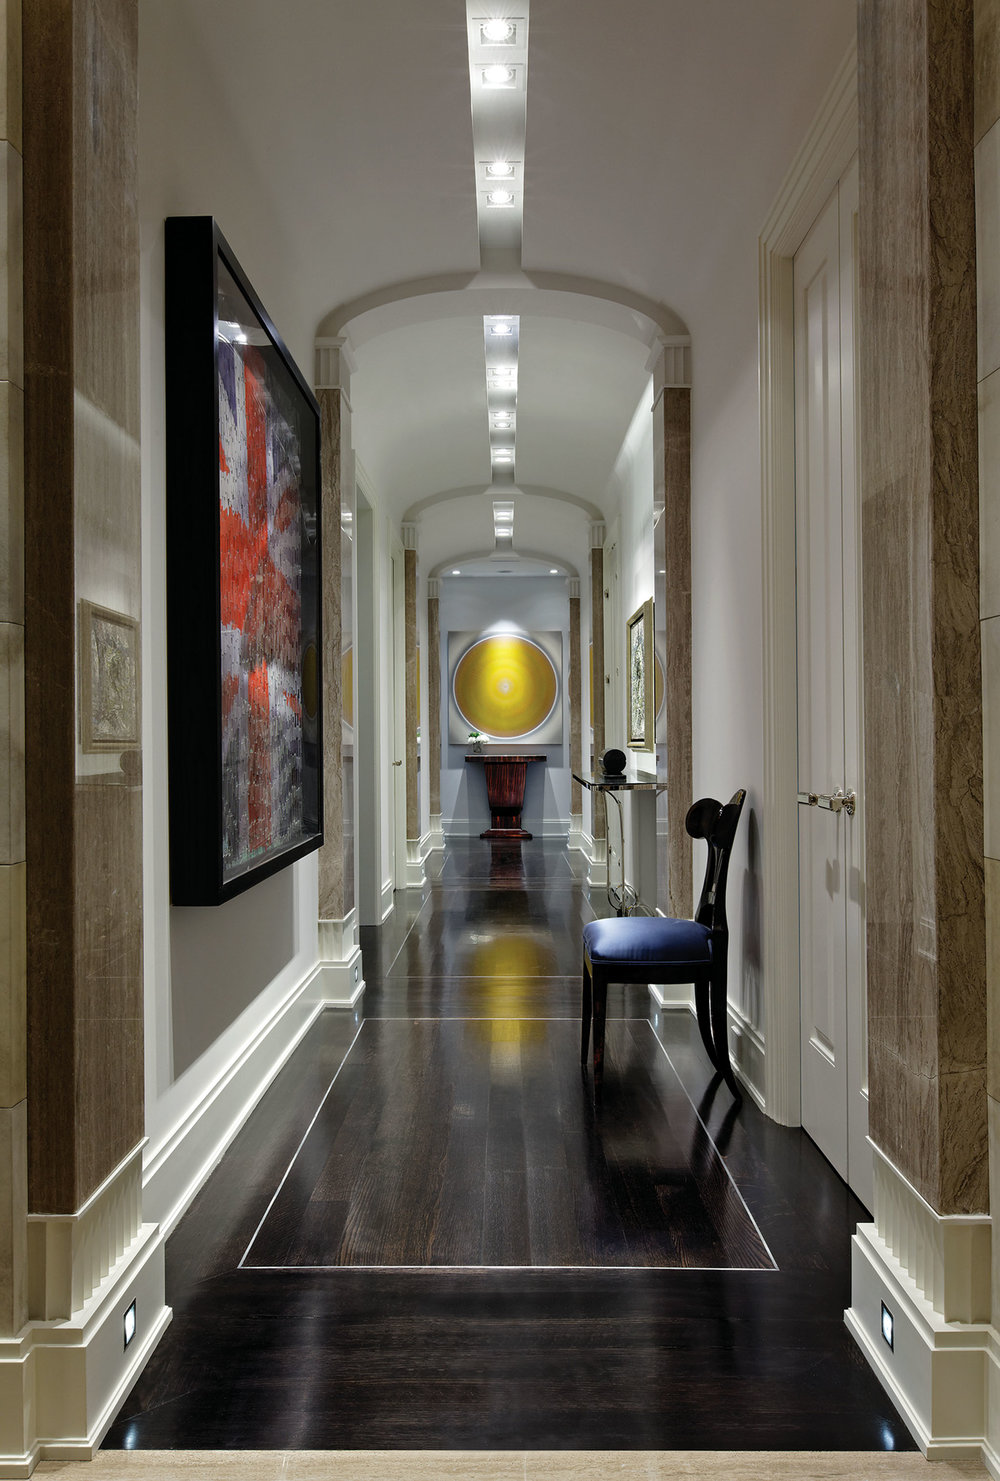 A recessed trough for lights and a simplified seamless oval barrel vault turn a classical colonnade into a modern gallery hall.